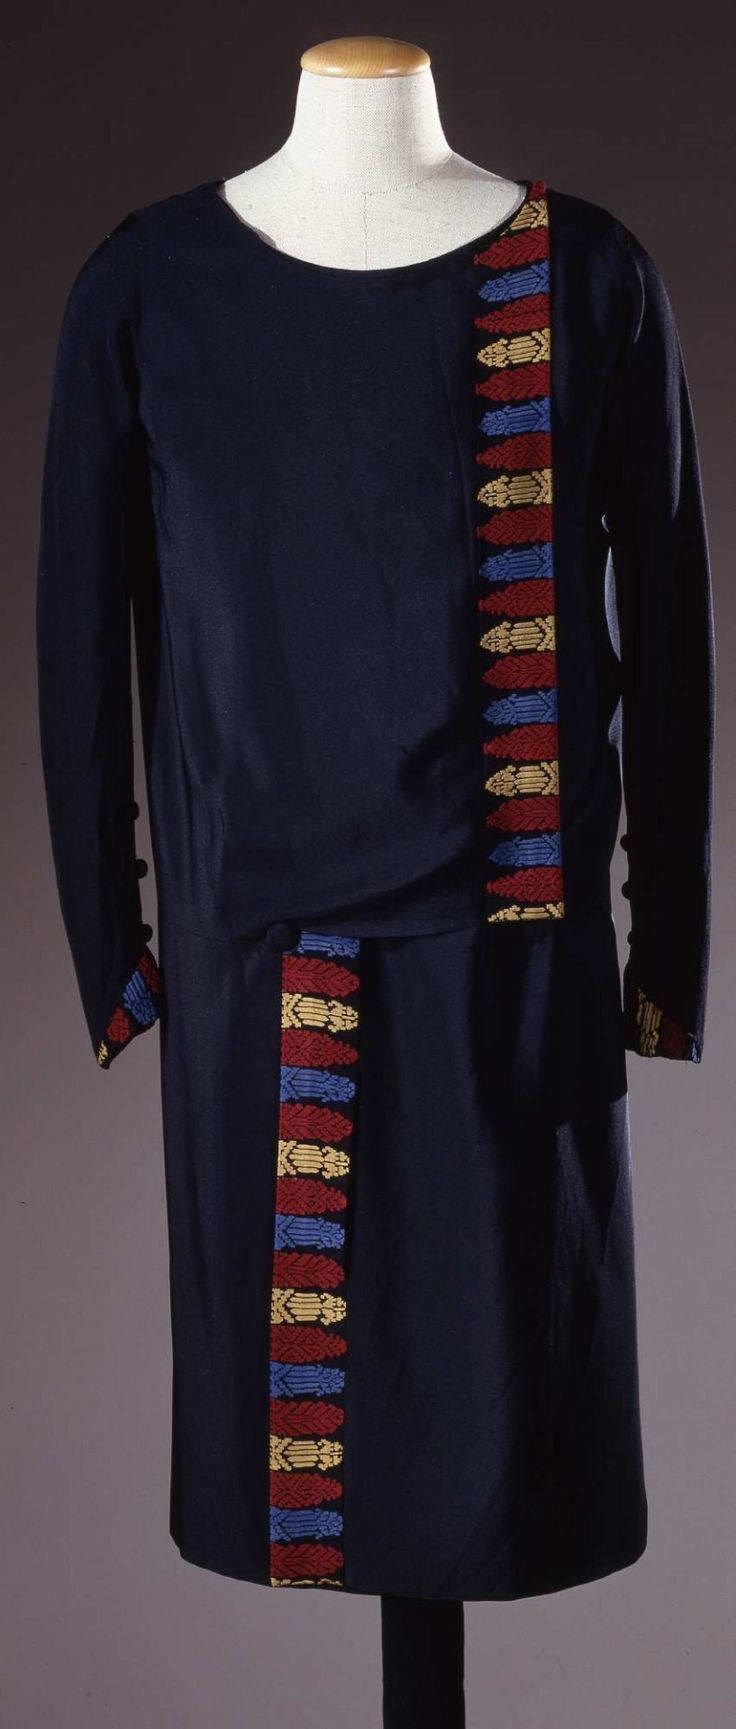 Dress 1928 Black silk crepe with a low waist and embroidered borders in burgundy, blue and yellow silk thread. It has a round neckline and sleeves closed by buttons at the wrist.  Bodice and skirt made of two asymmetrical panels. Fastened by hooks at the top of the garment and a button in the skirt  Galleria del Costume di Palazzo Pitti